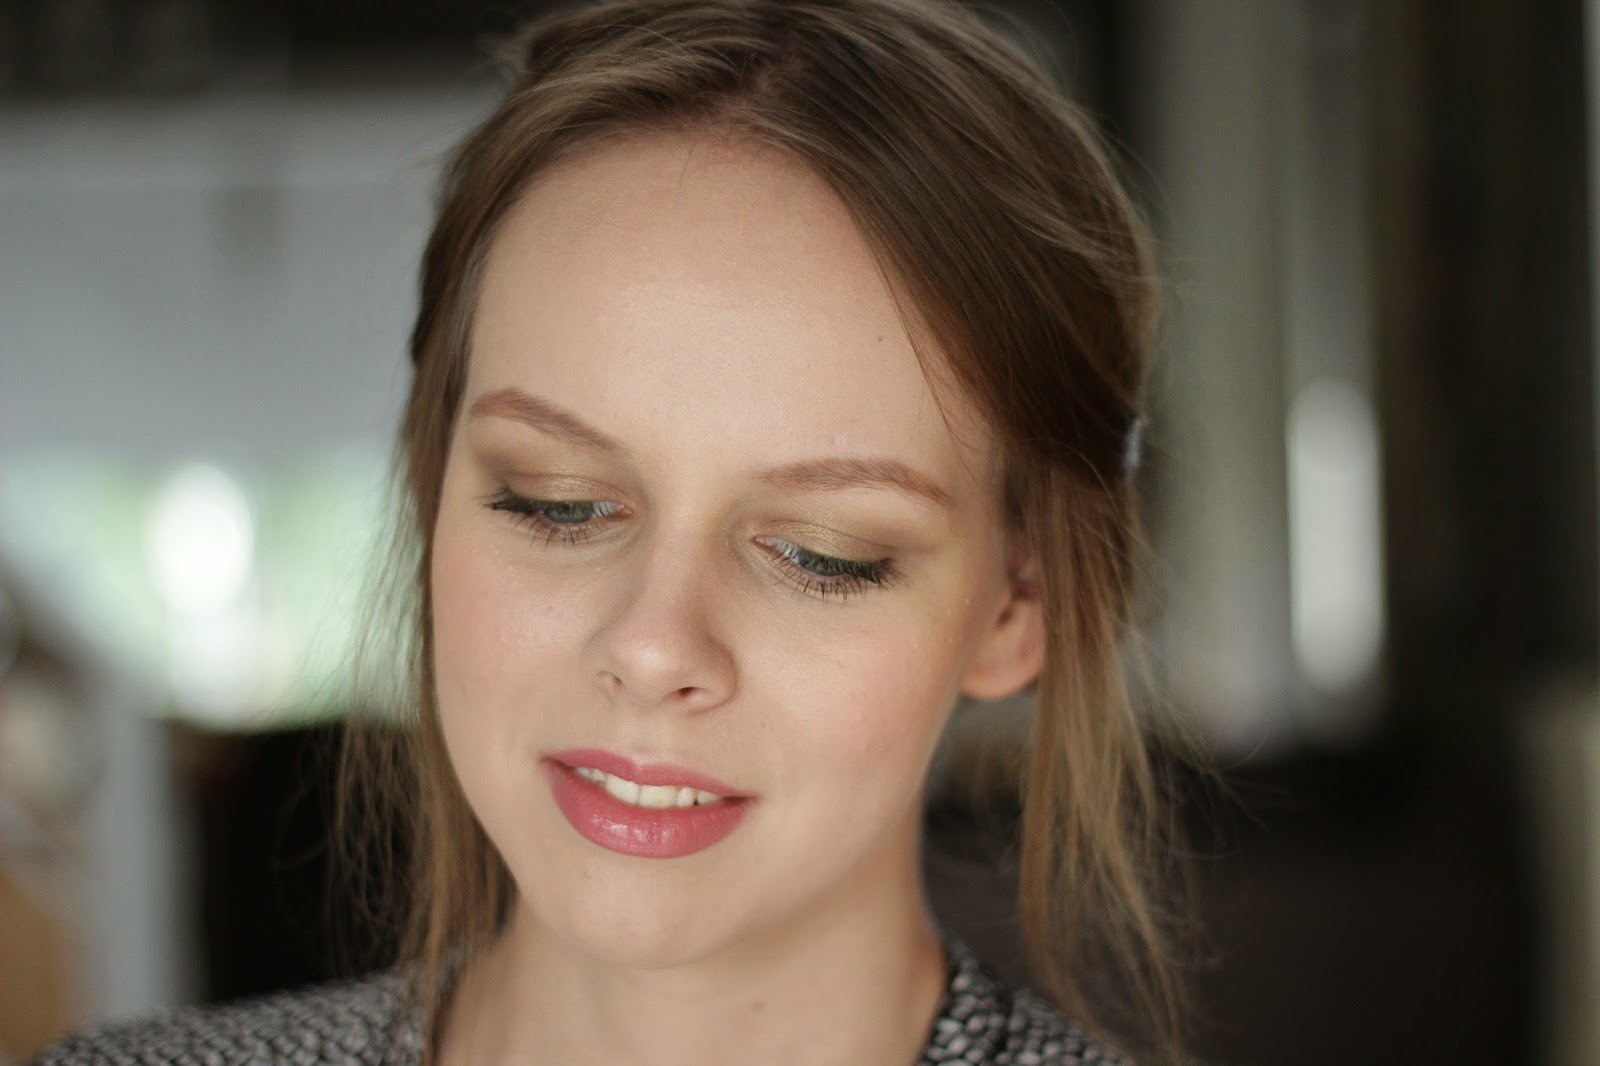 make-up look london feel, neutrale make-up look